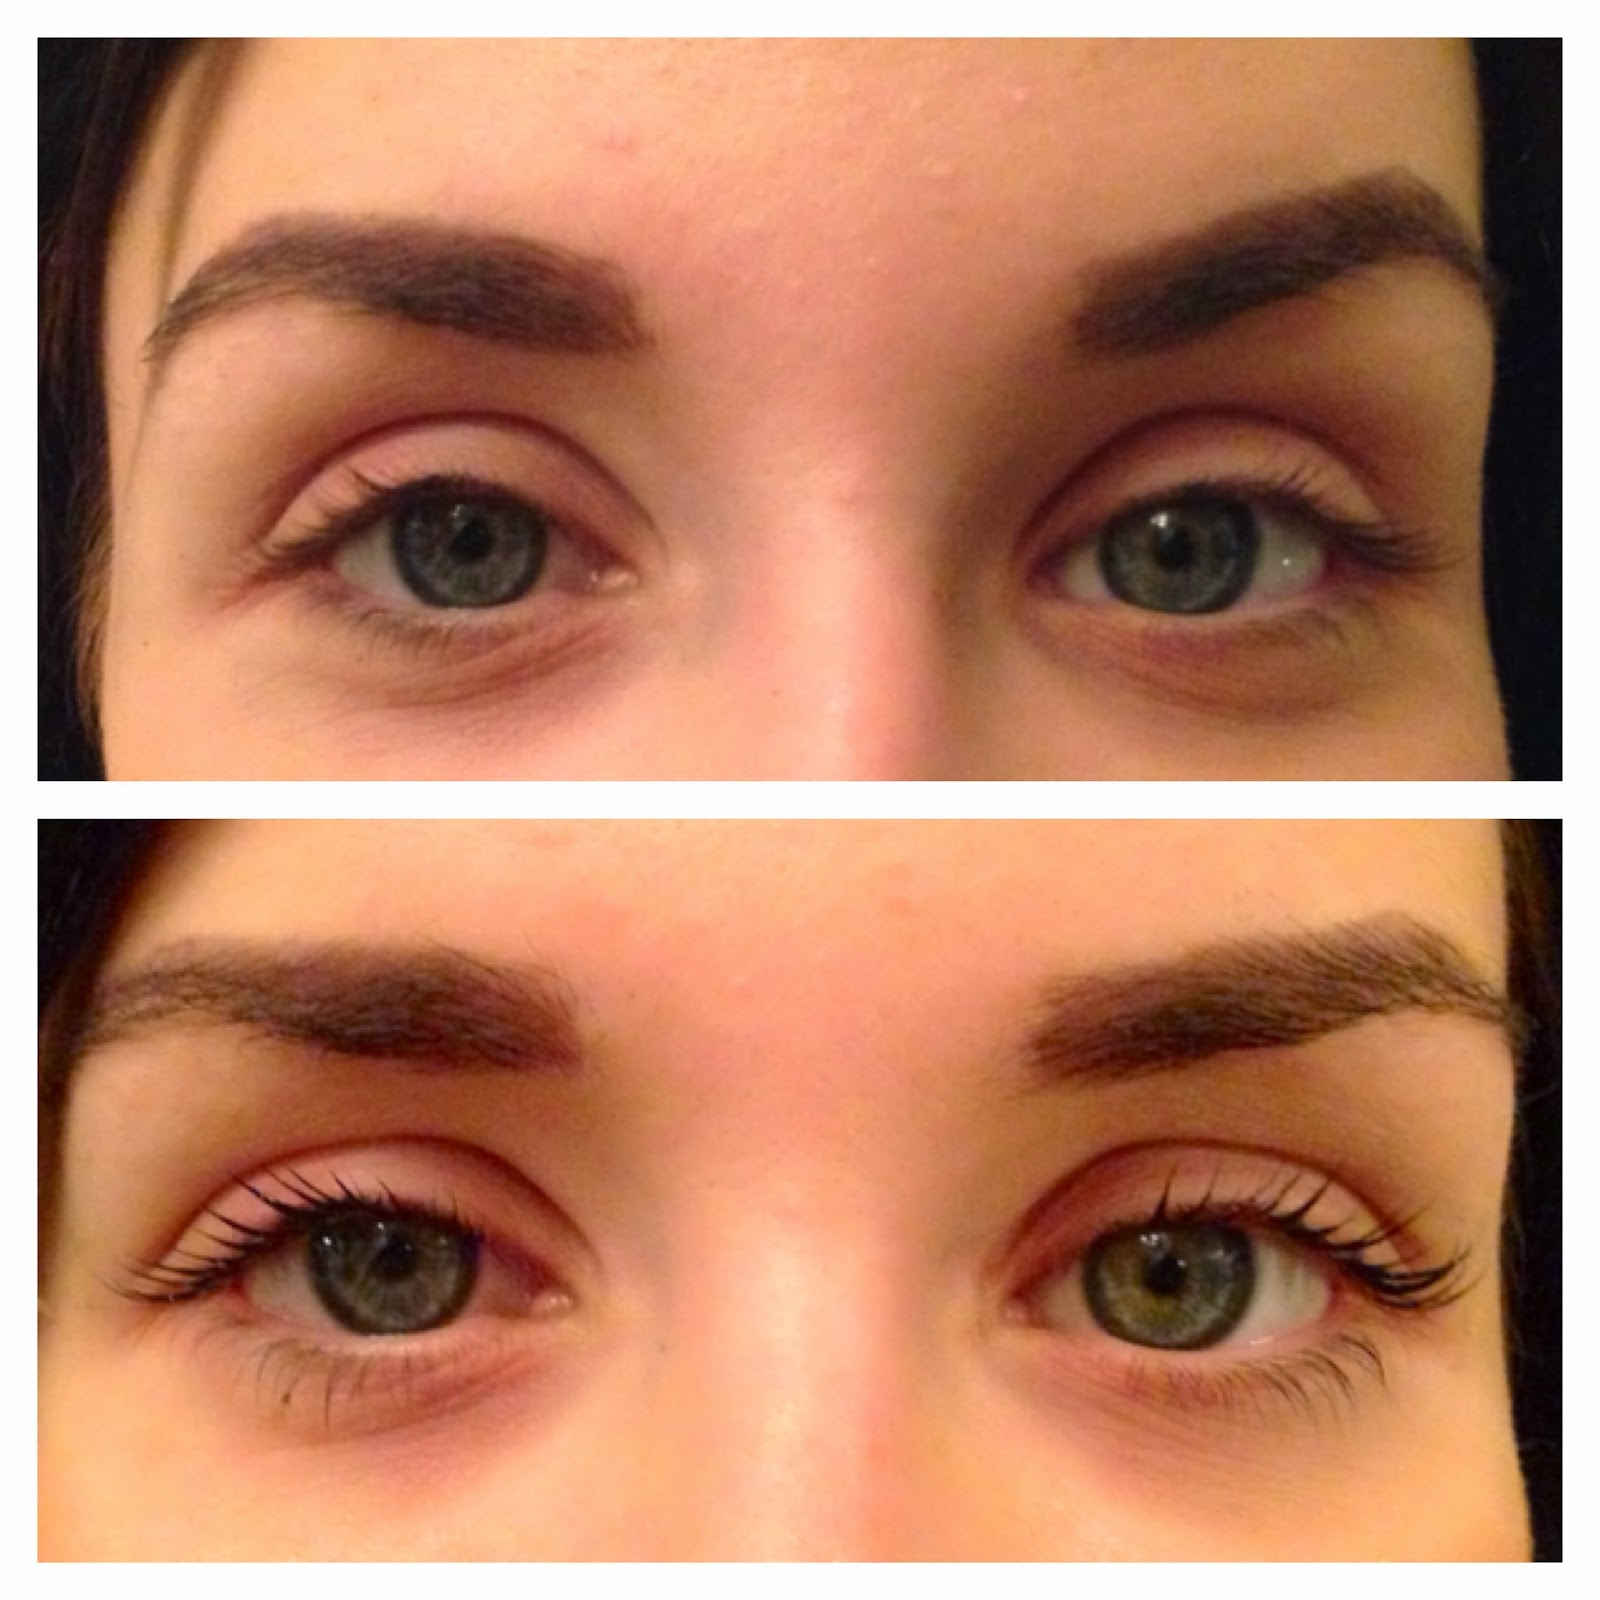 eyebrow tinting before and after newhairstylesformen2014com